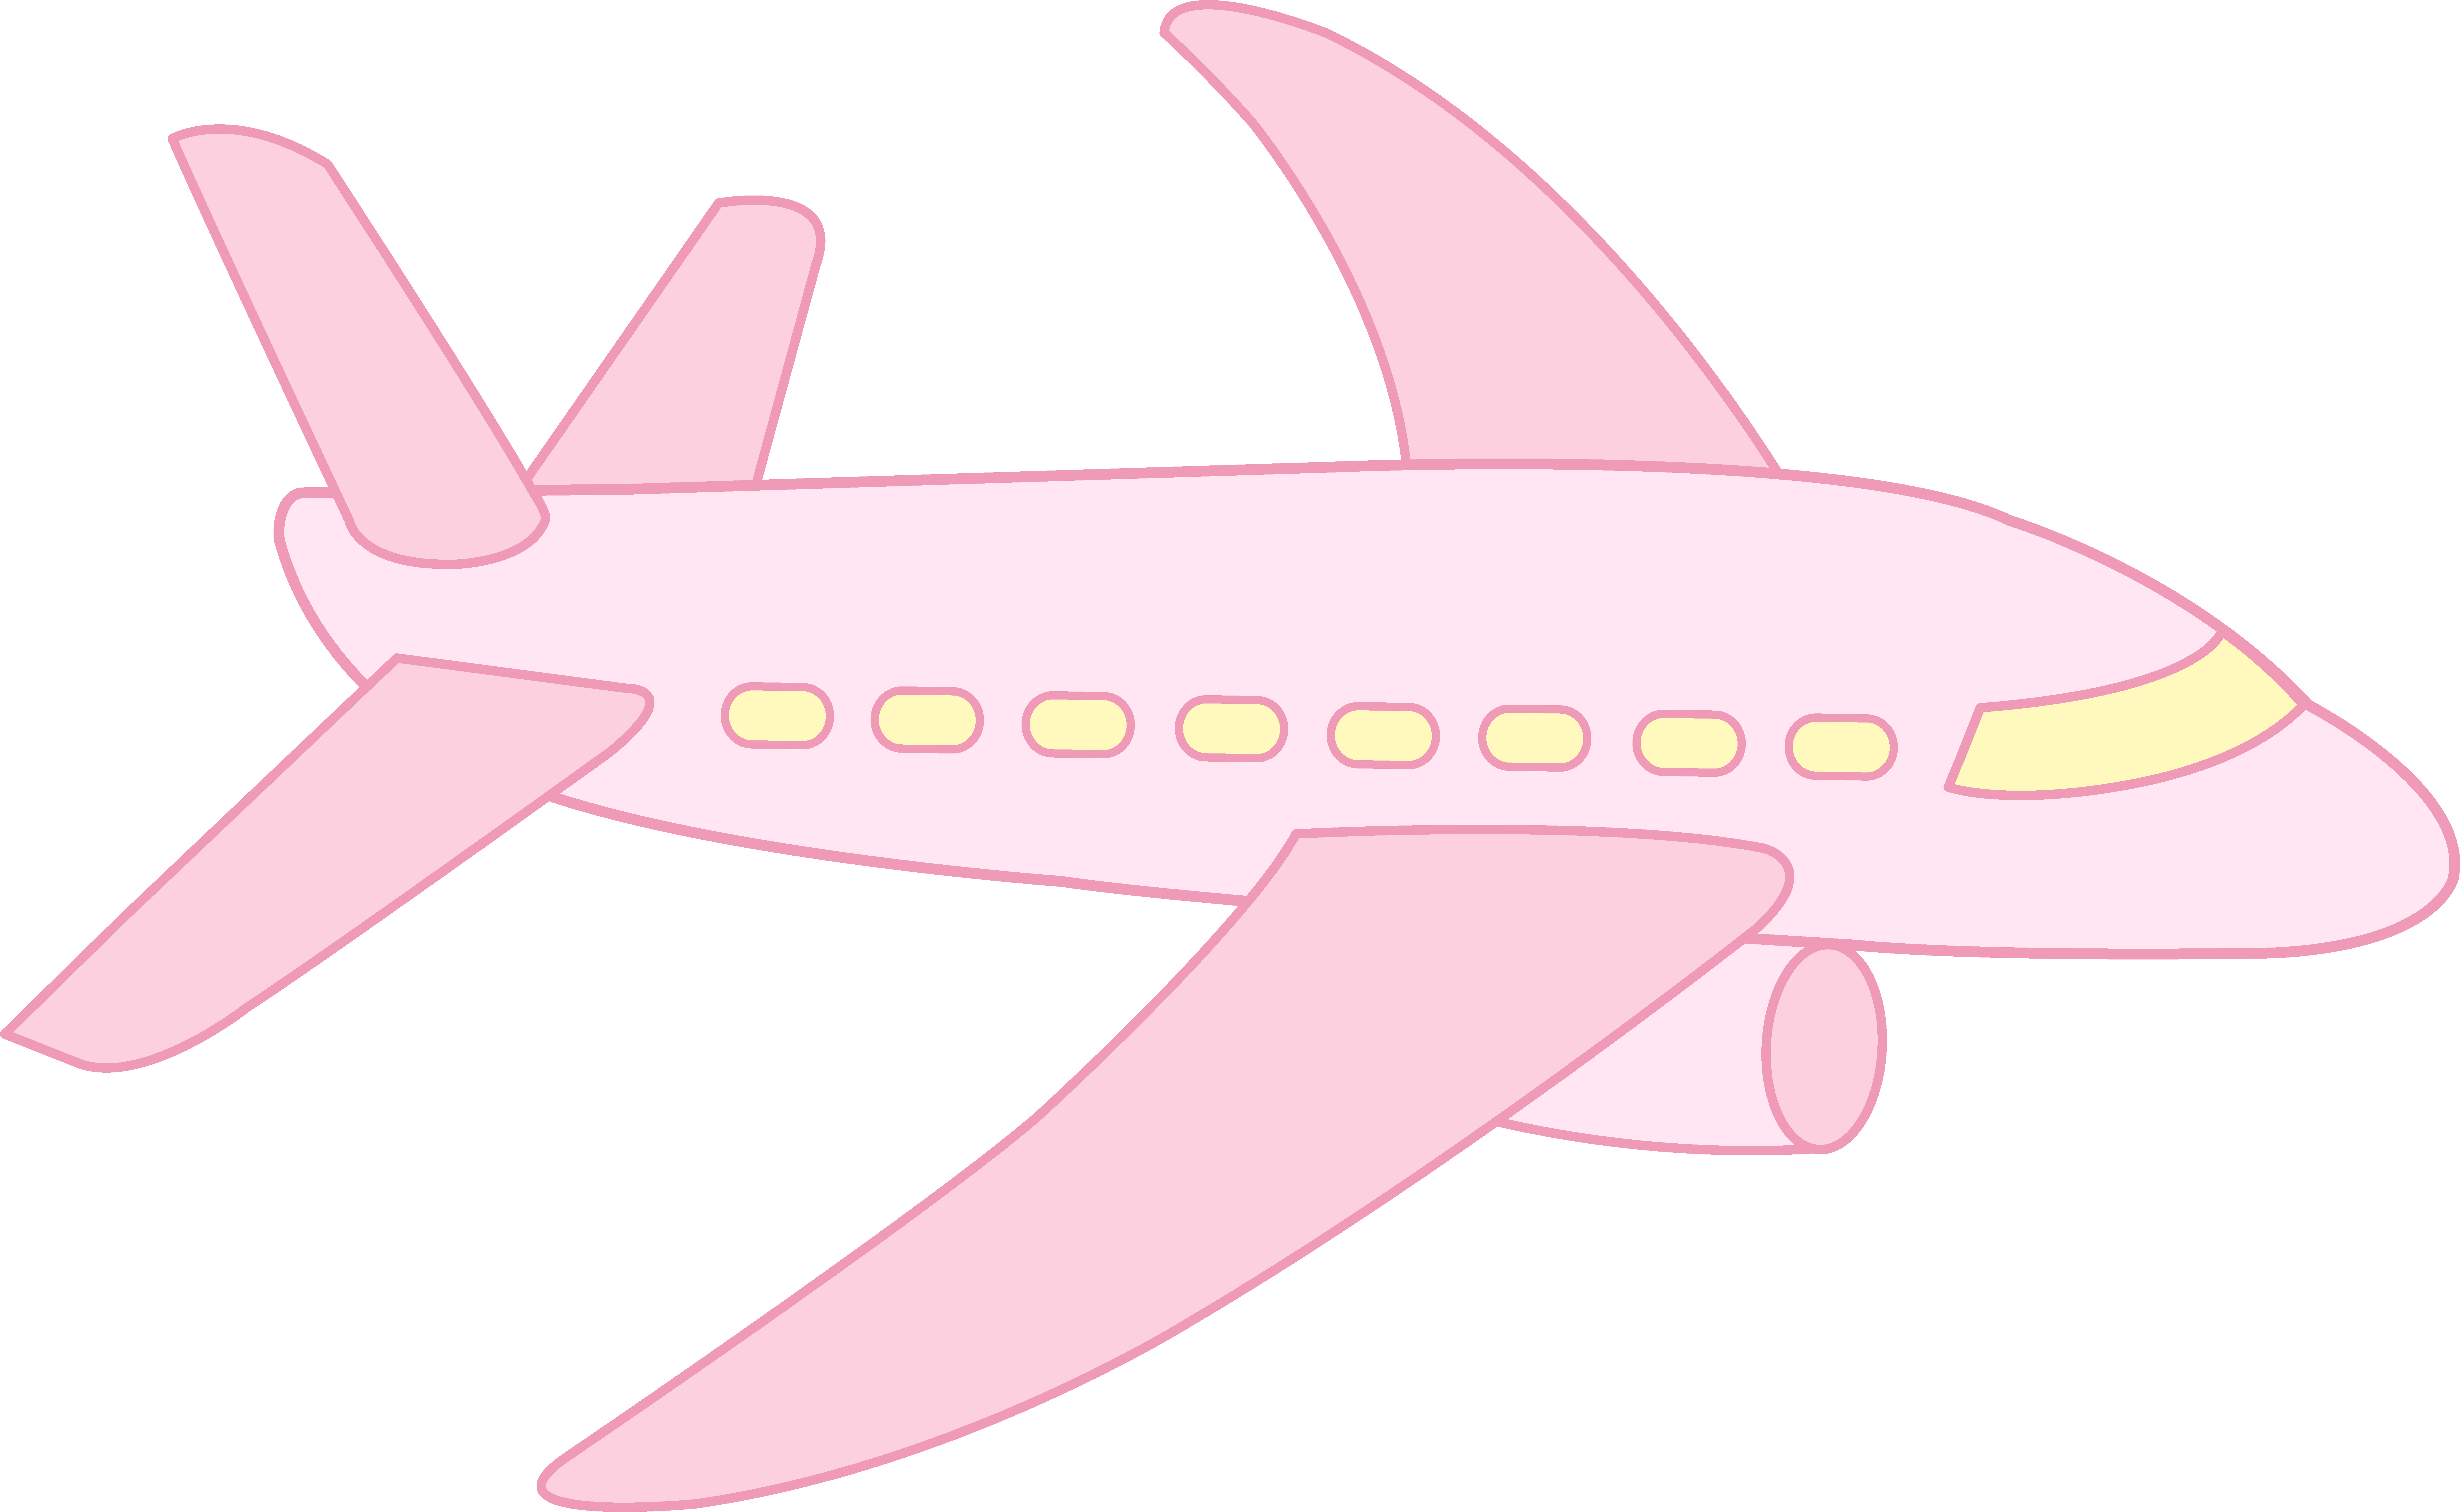 Airplane heart clipart clip freeuse download Cute Airplane | Cute Pink Airplane - Free Clip Art | Cartoon ... clip freeuse download